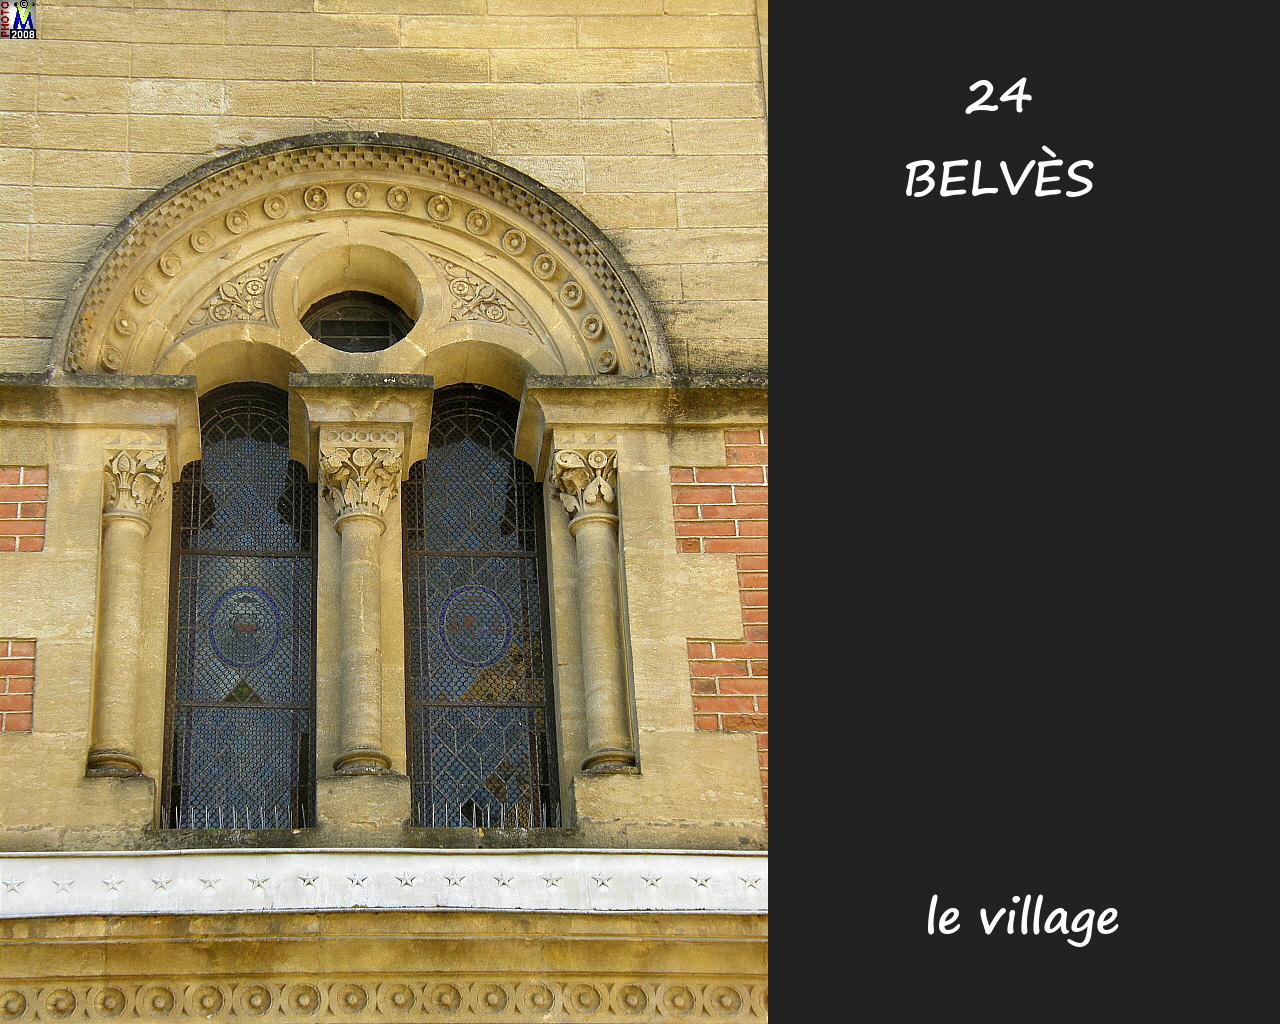 24BELVES_village_184.jpg